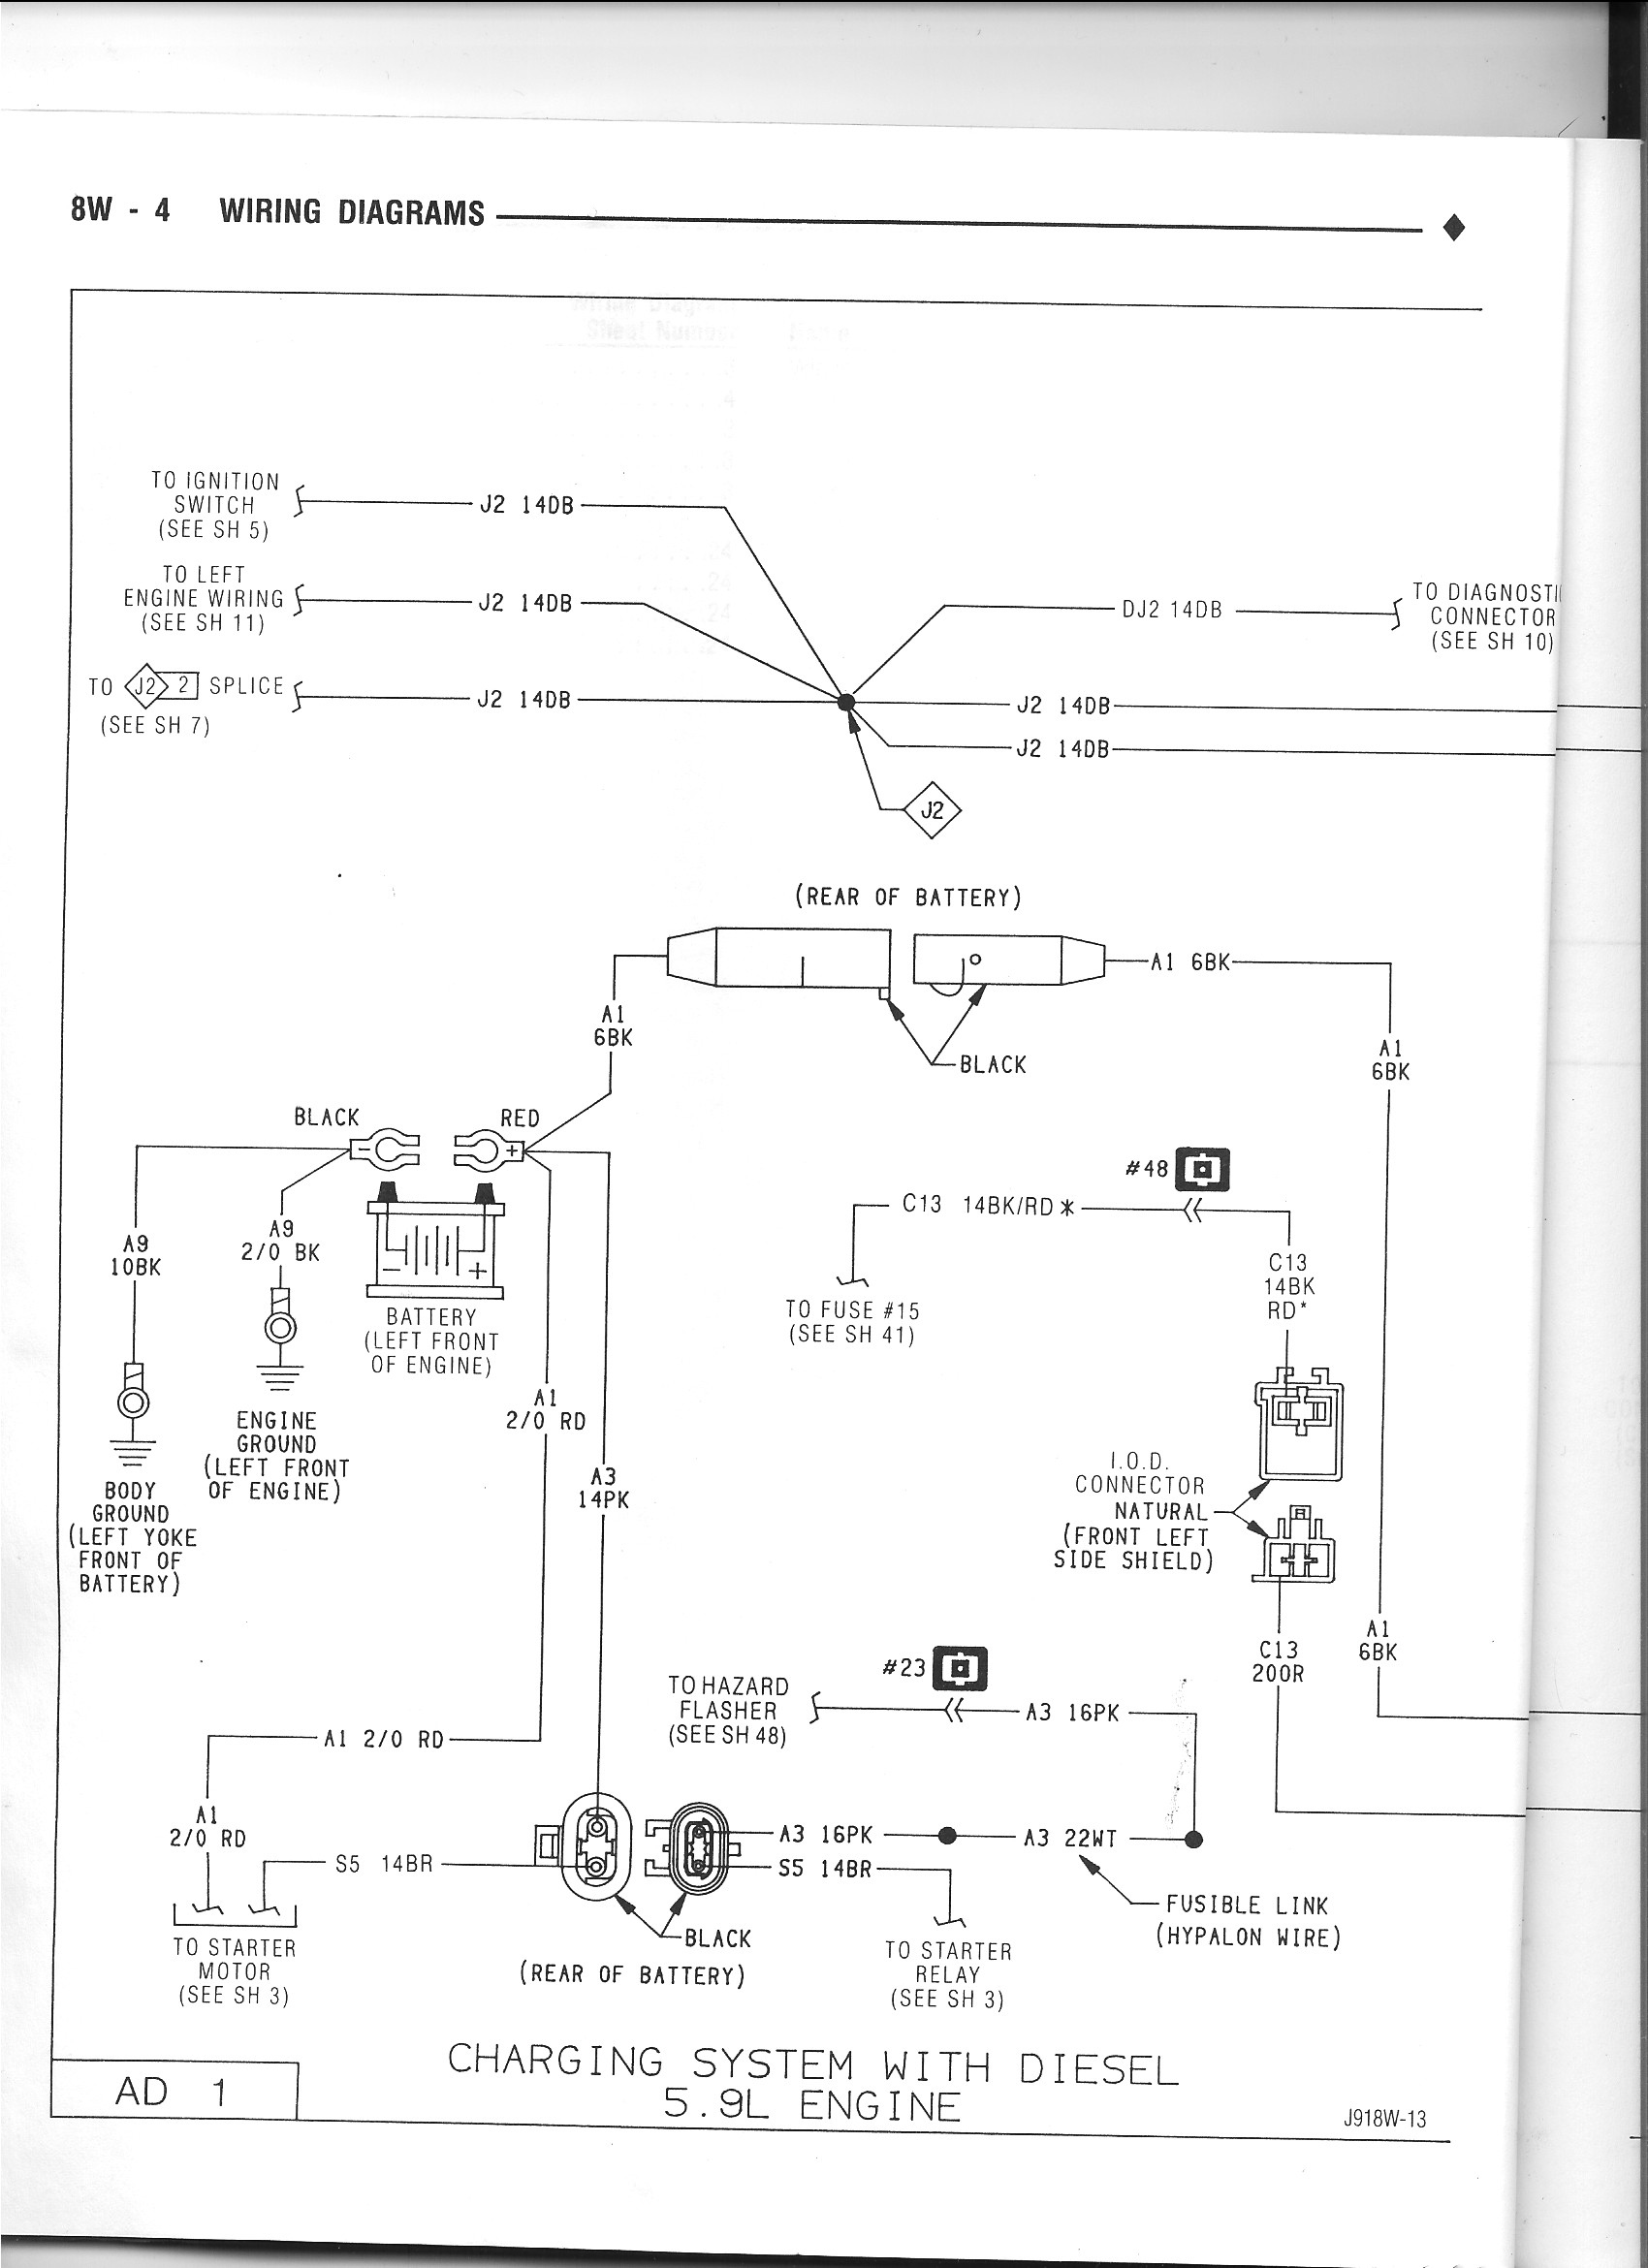 cummins alternator wiring diagram free download wiring diagram rh xwiaw us 1992 Dodge Dakota Wiring Diagram Dodge Neon Wiring Harness Diagram